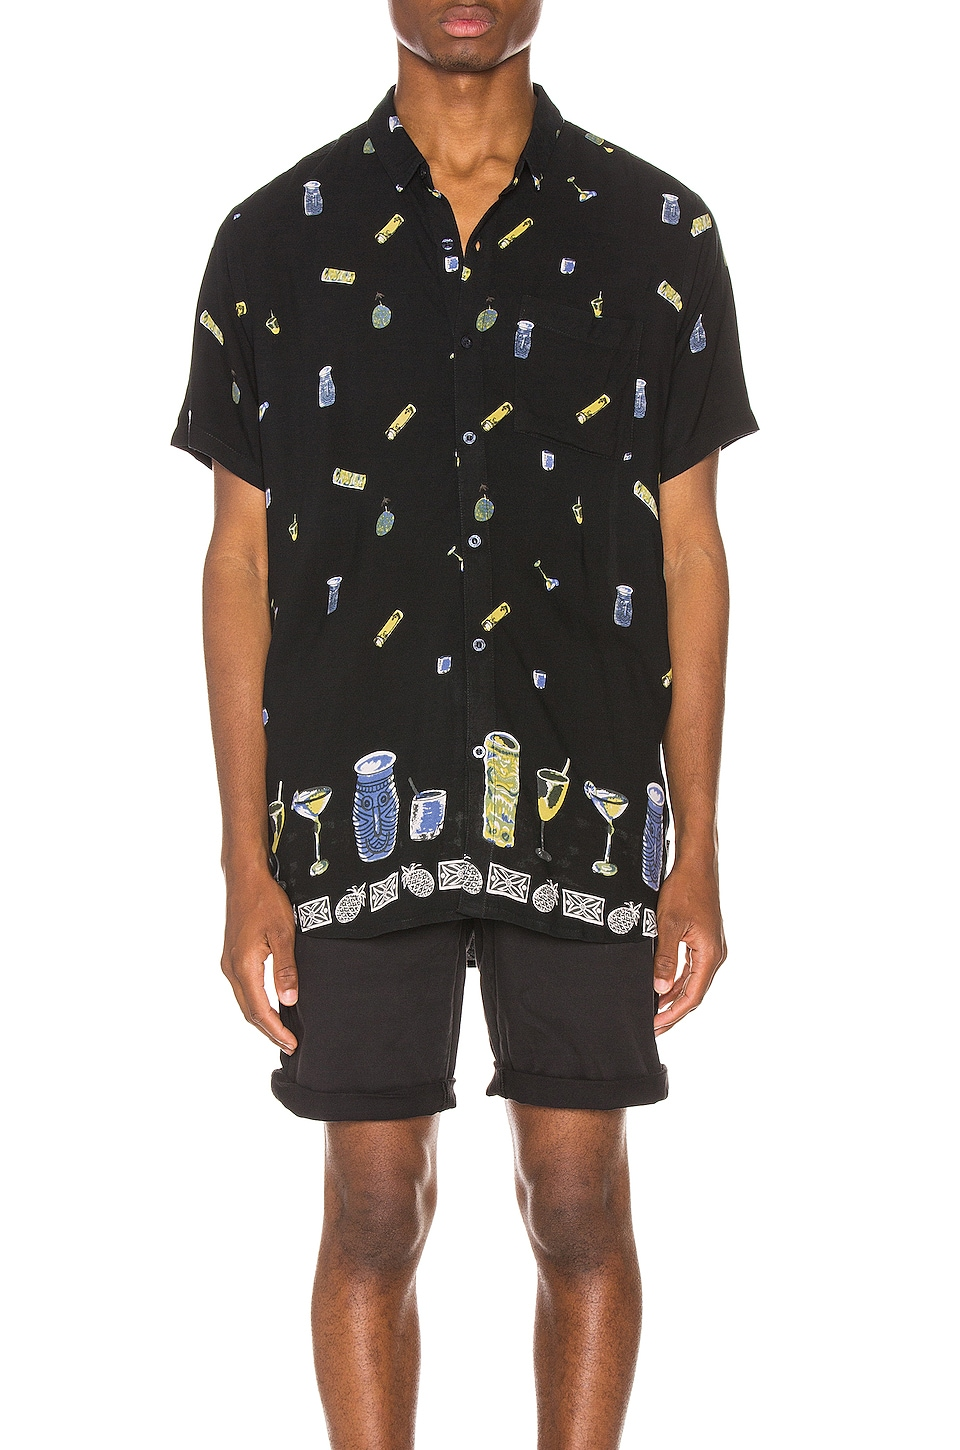 ROLLA'S Bon Drinks On Me Shirt in Black